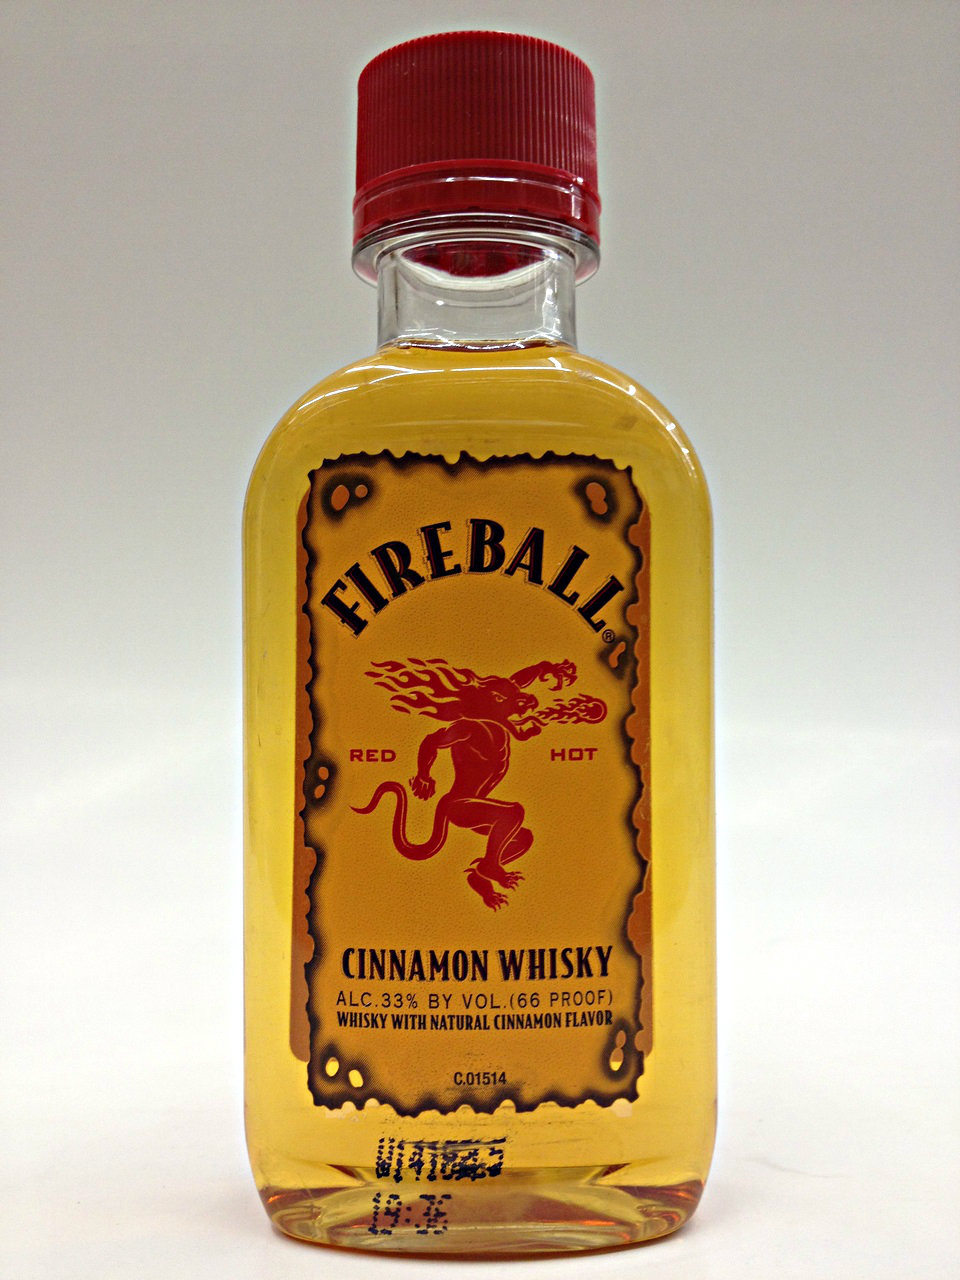 What does fireball look like? How does it form and what is dangerous? (Photo) 72